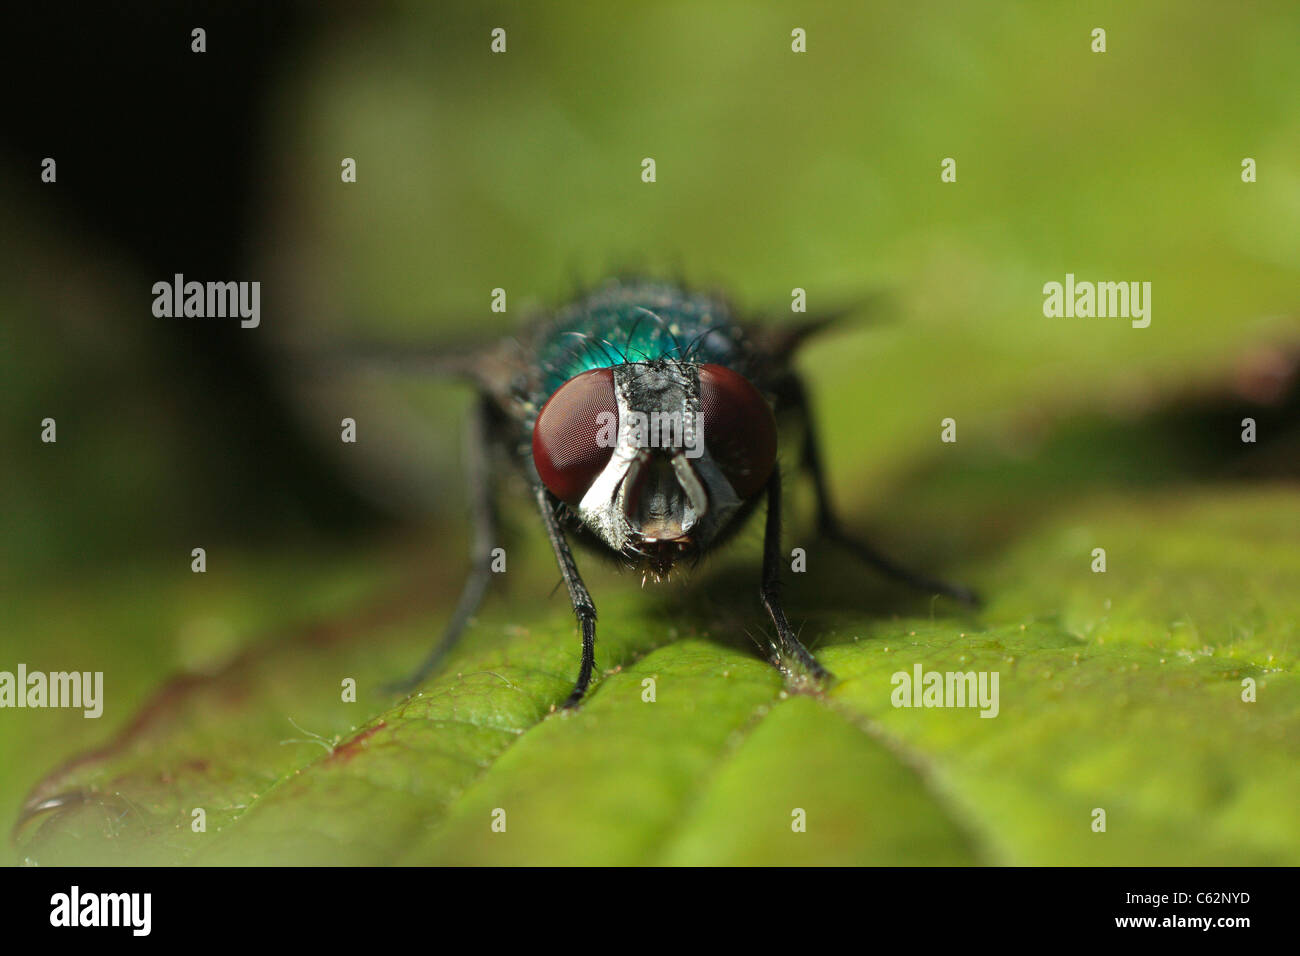 High magnification macro image of a green bottle fly showing its compound eyes. - Stock Image